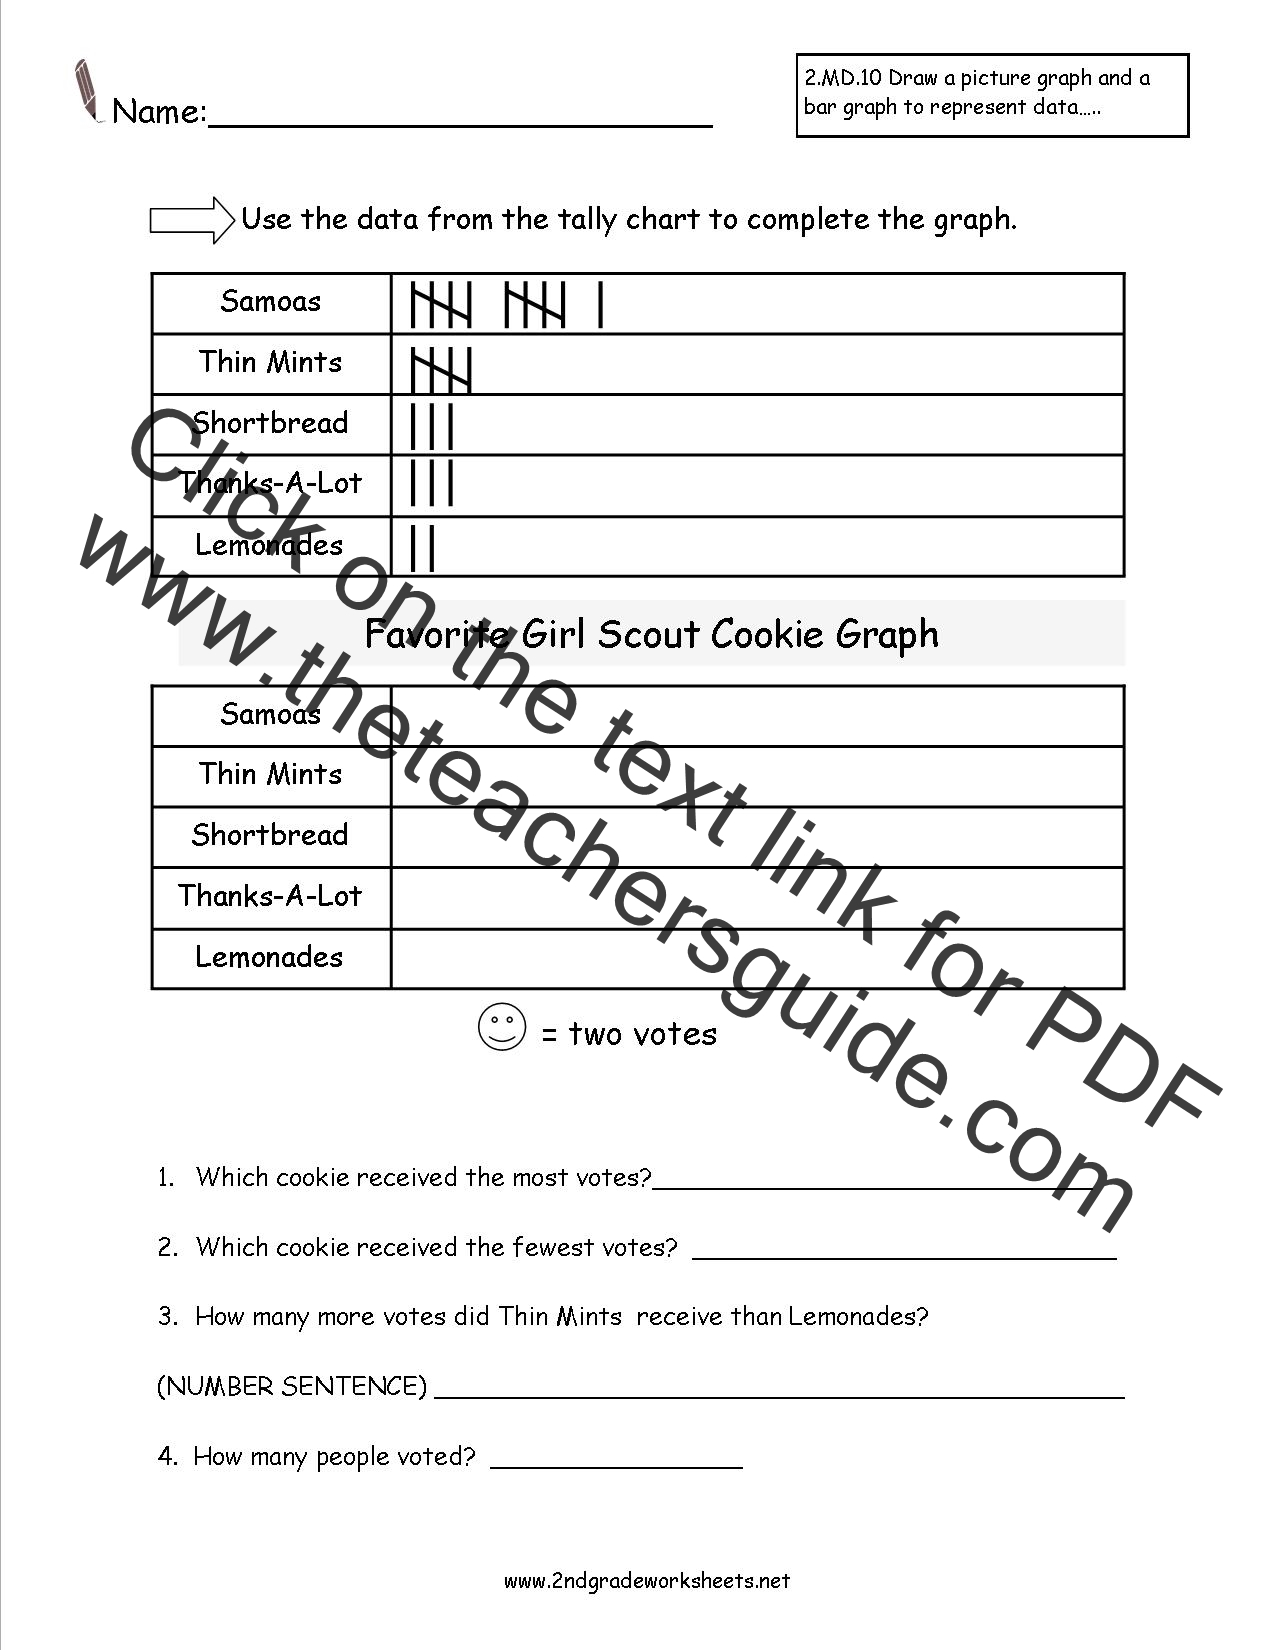 Printables Pictograph Worksheets second grade reading and creating pictograph worksheets favorite girl scout cookie pictograph